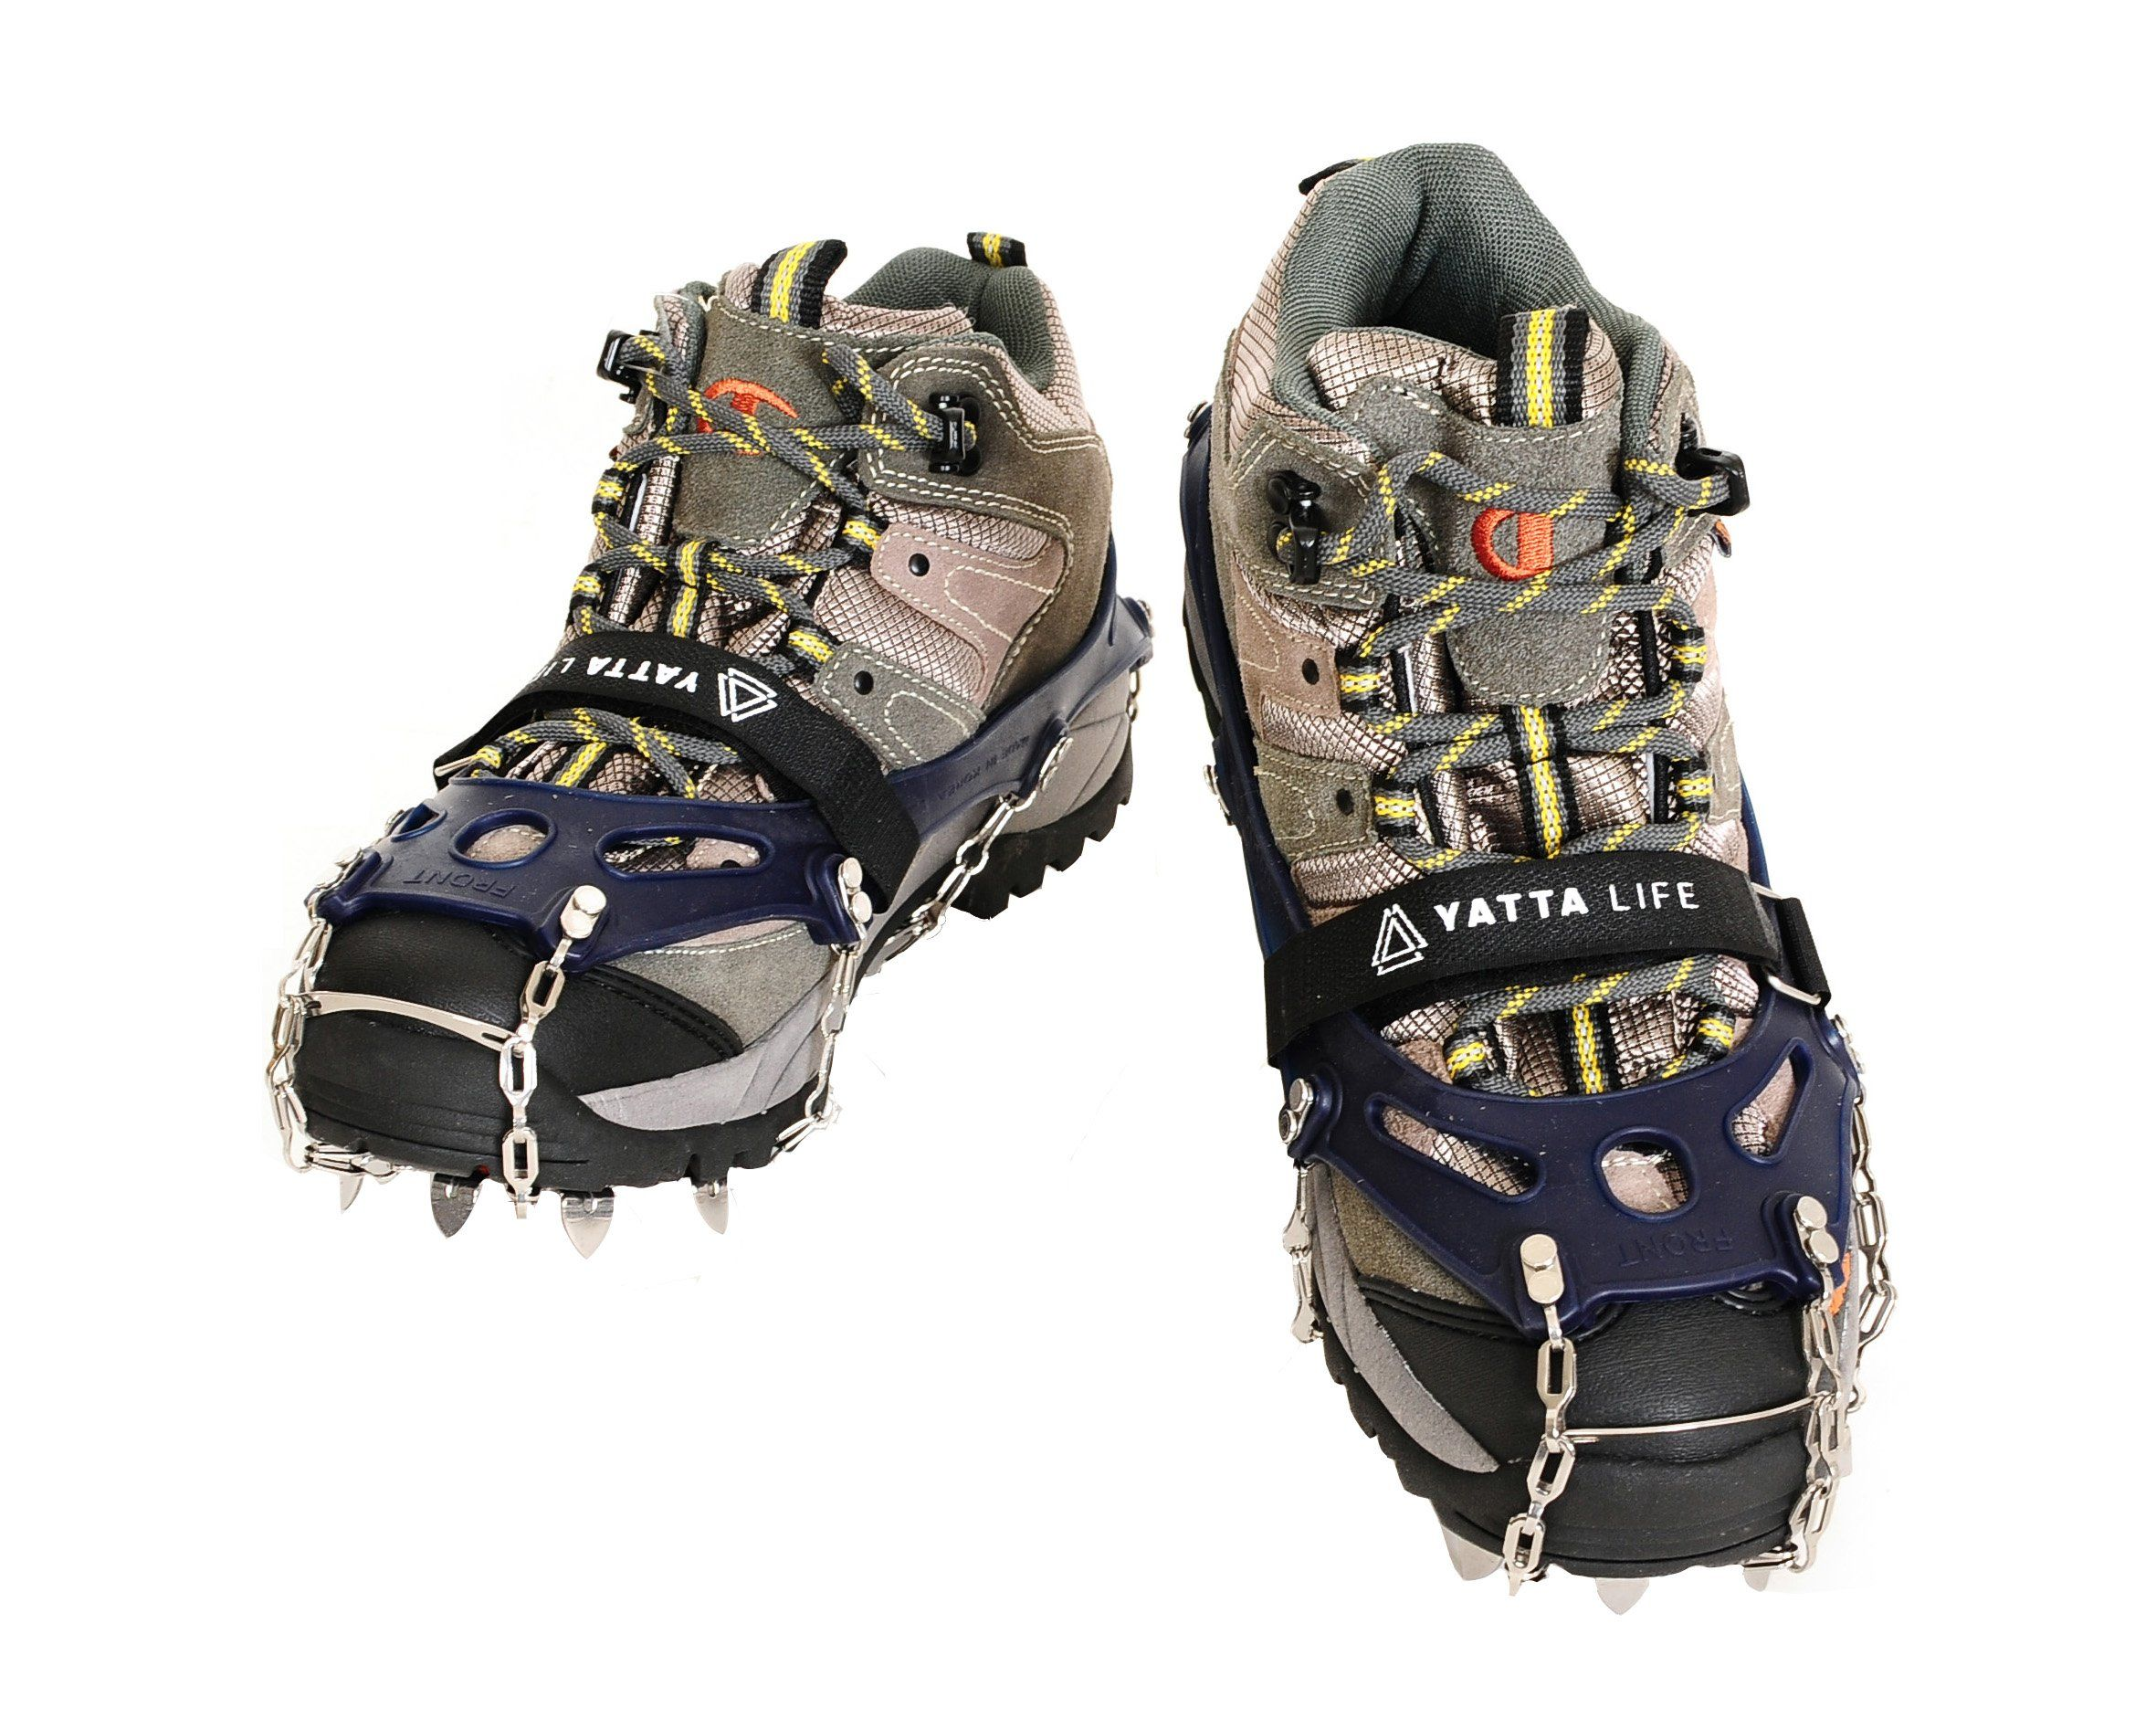 Yatta Life Heavy Duty Trail Spikes 14 Spikes Ice Grip Snow Cleats Footwear Crampons For Walking Jogging Or Hiking On Snow An Walking Boots Hiking Boots Boots